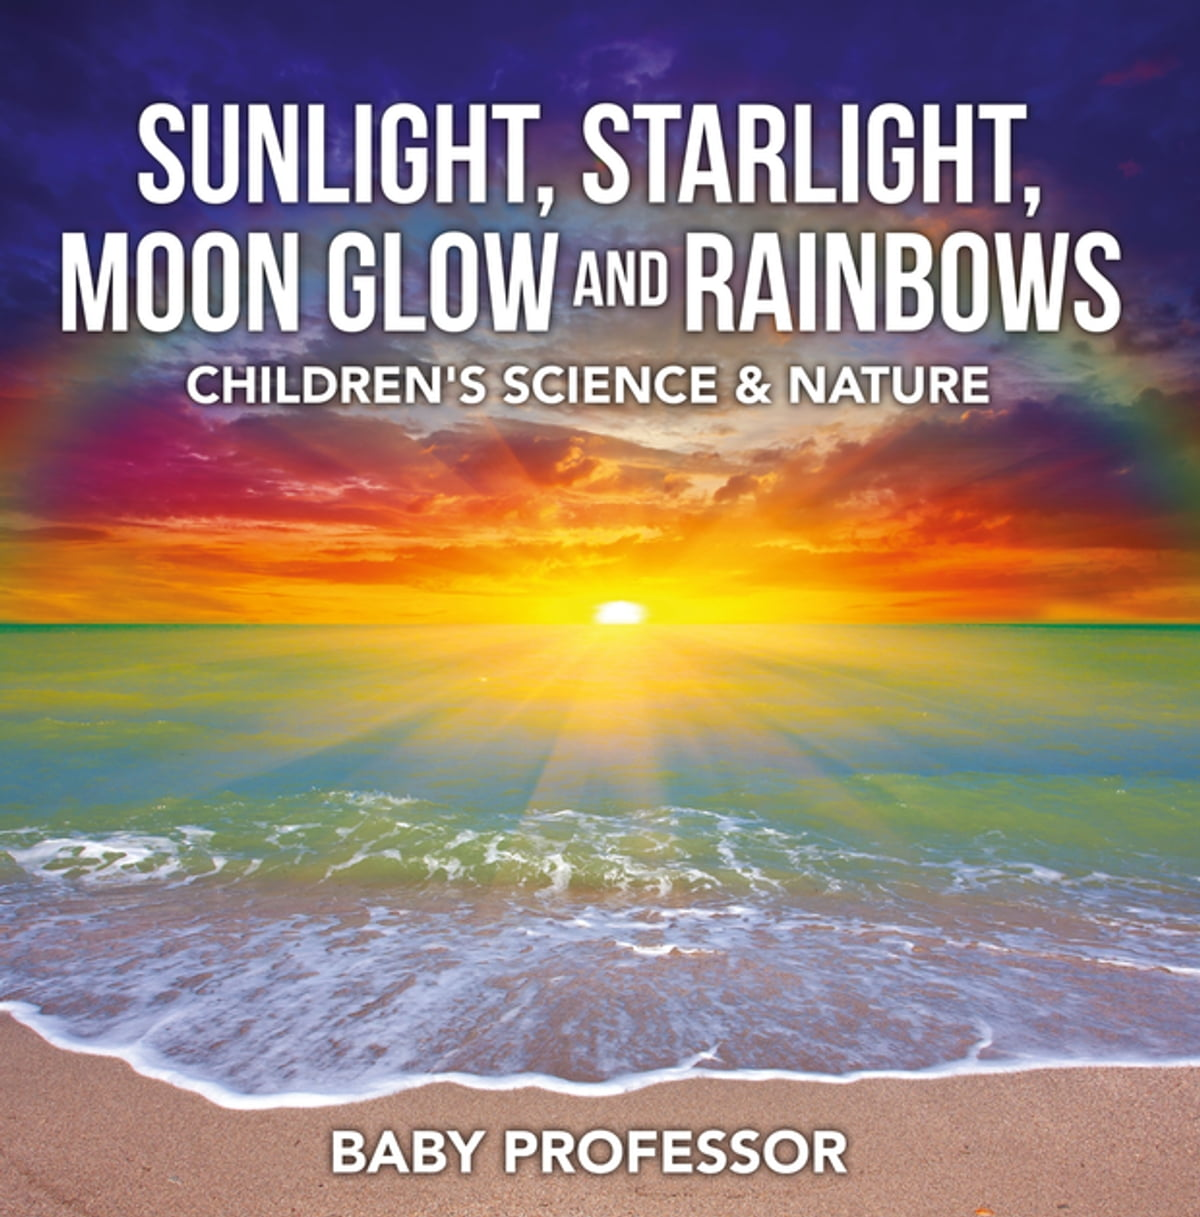 Sunlight, Starlight, Moon Glow and Rainbows | Children's Science & Nature  ebook by Baby Professor - Rakuten Kobo